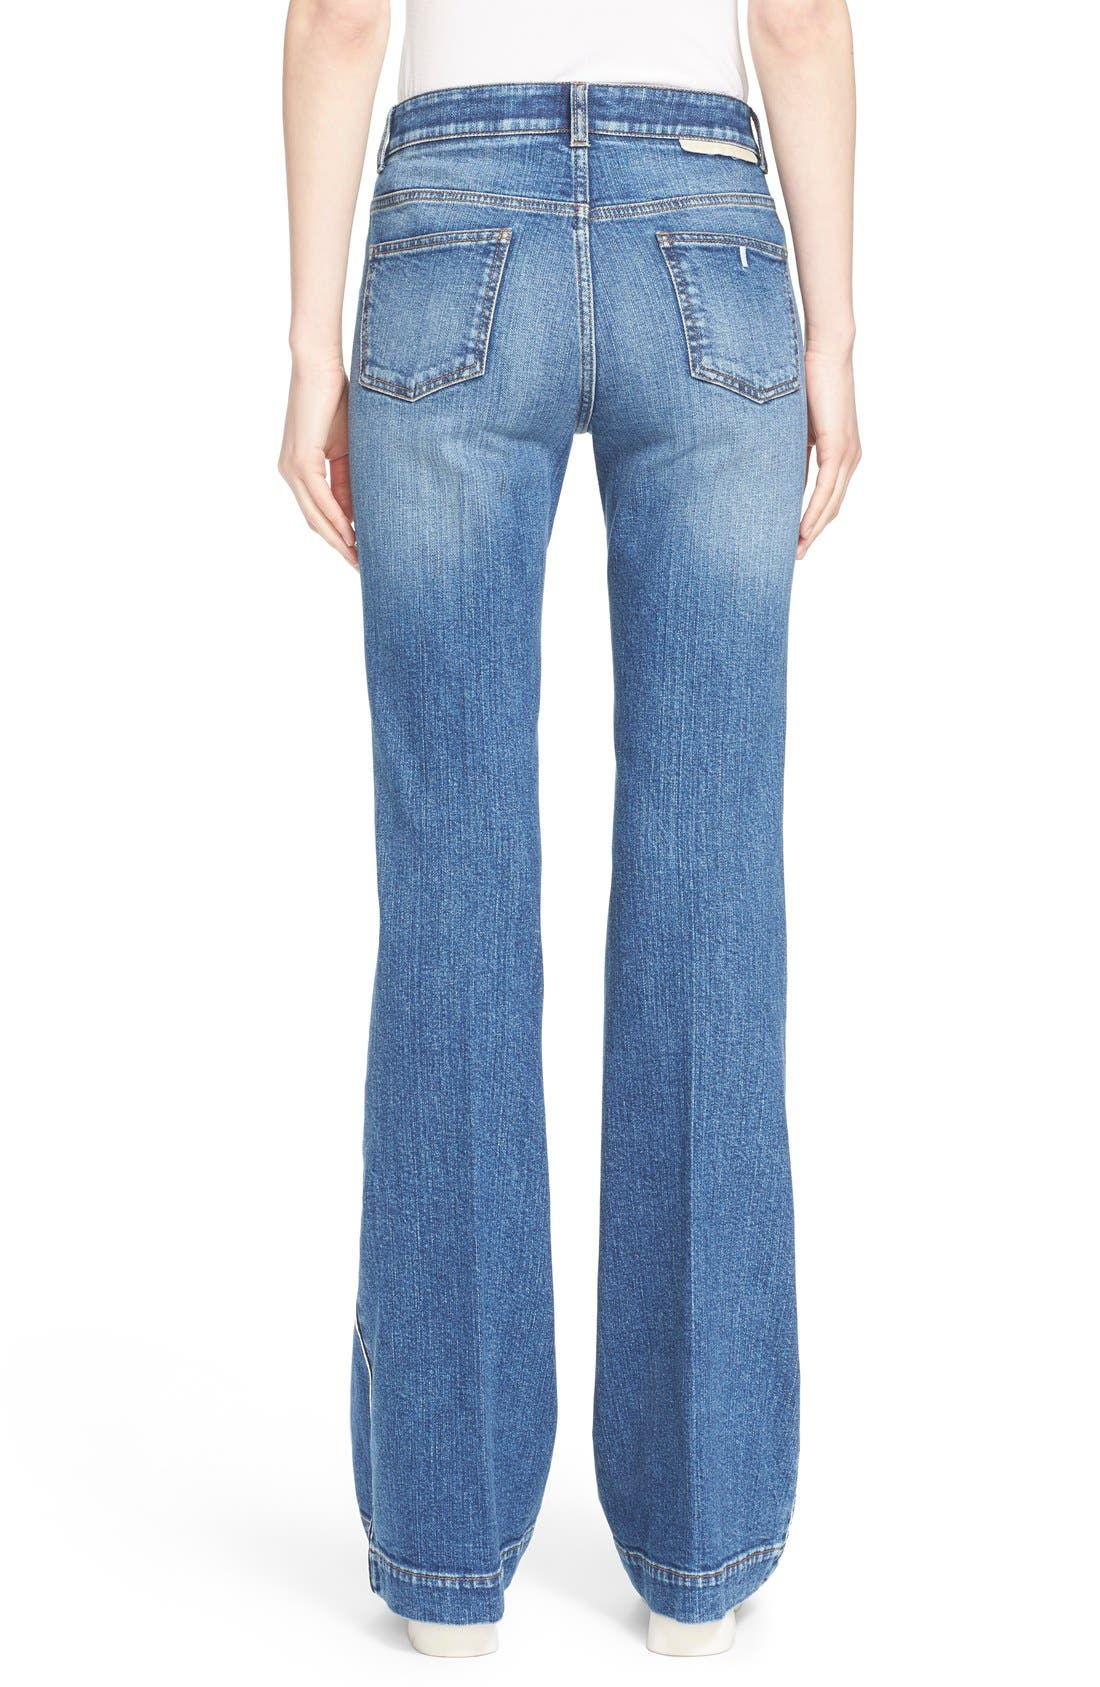 Alternate Image 2  - Stella McCartney '70s Flare' Jeans (Classic Blue)